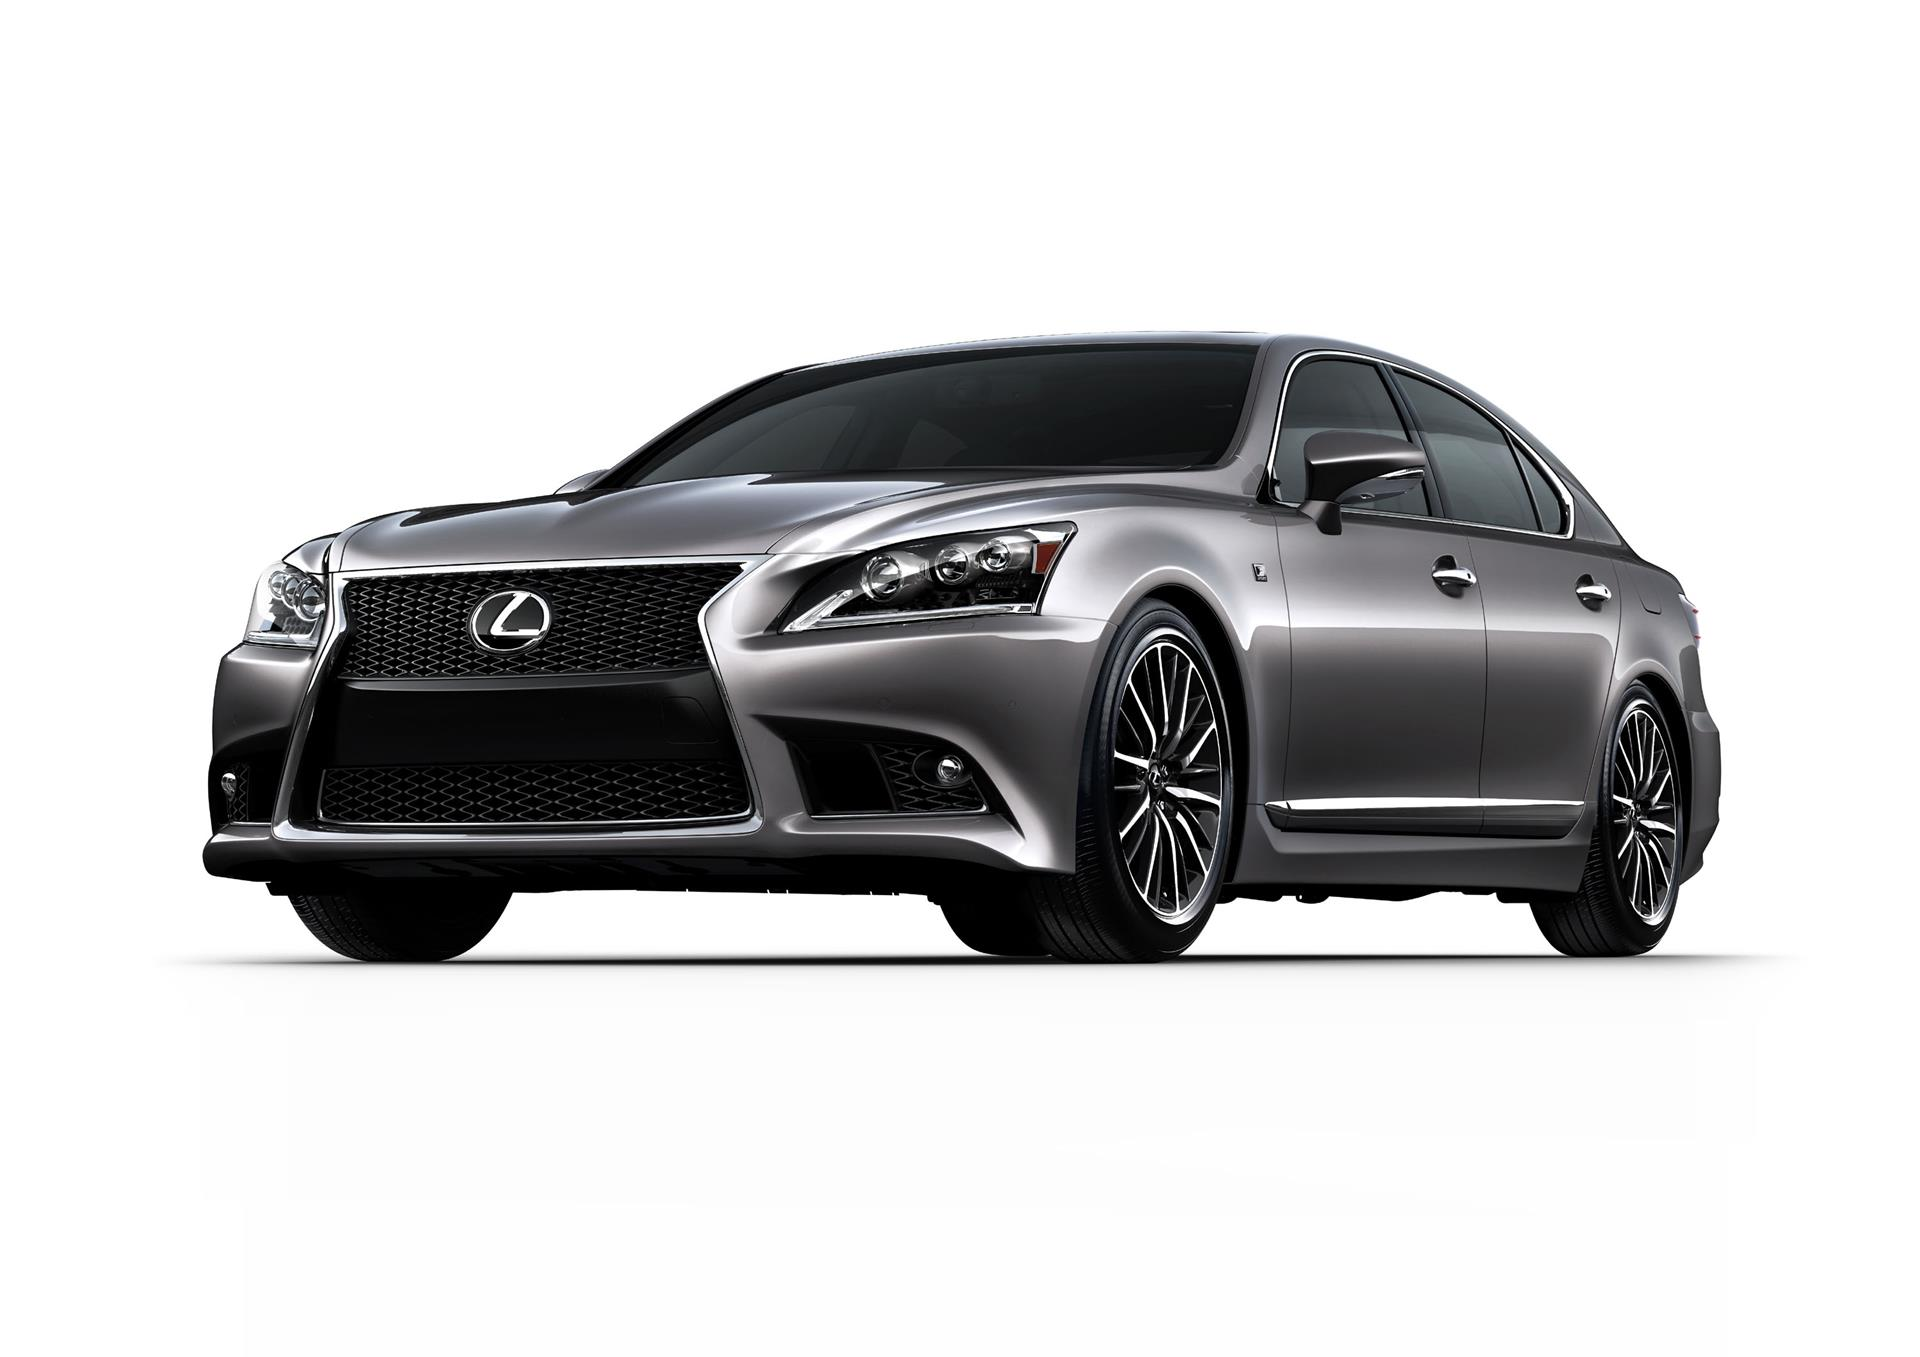 2015 lexus ls 460 f sport. Black Bedroom Furniture Sets. Home Design Ideas